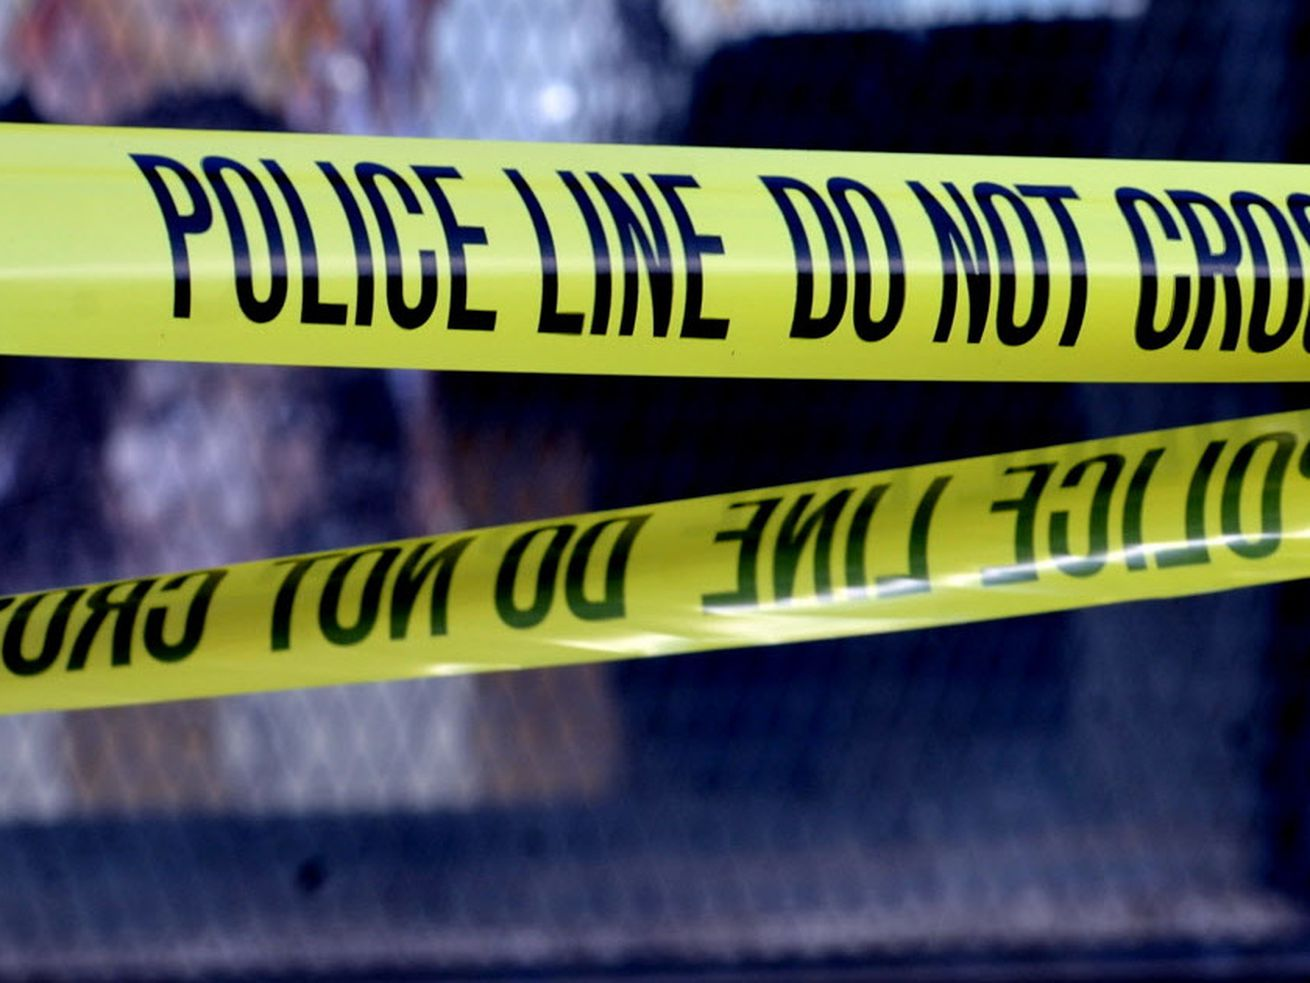 A man was fatally shot April 23, 2021 in Pullman.